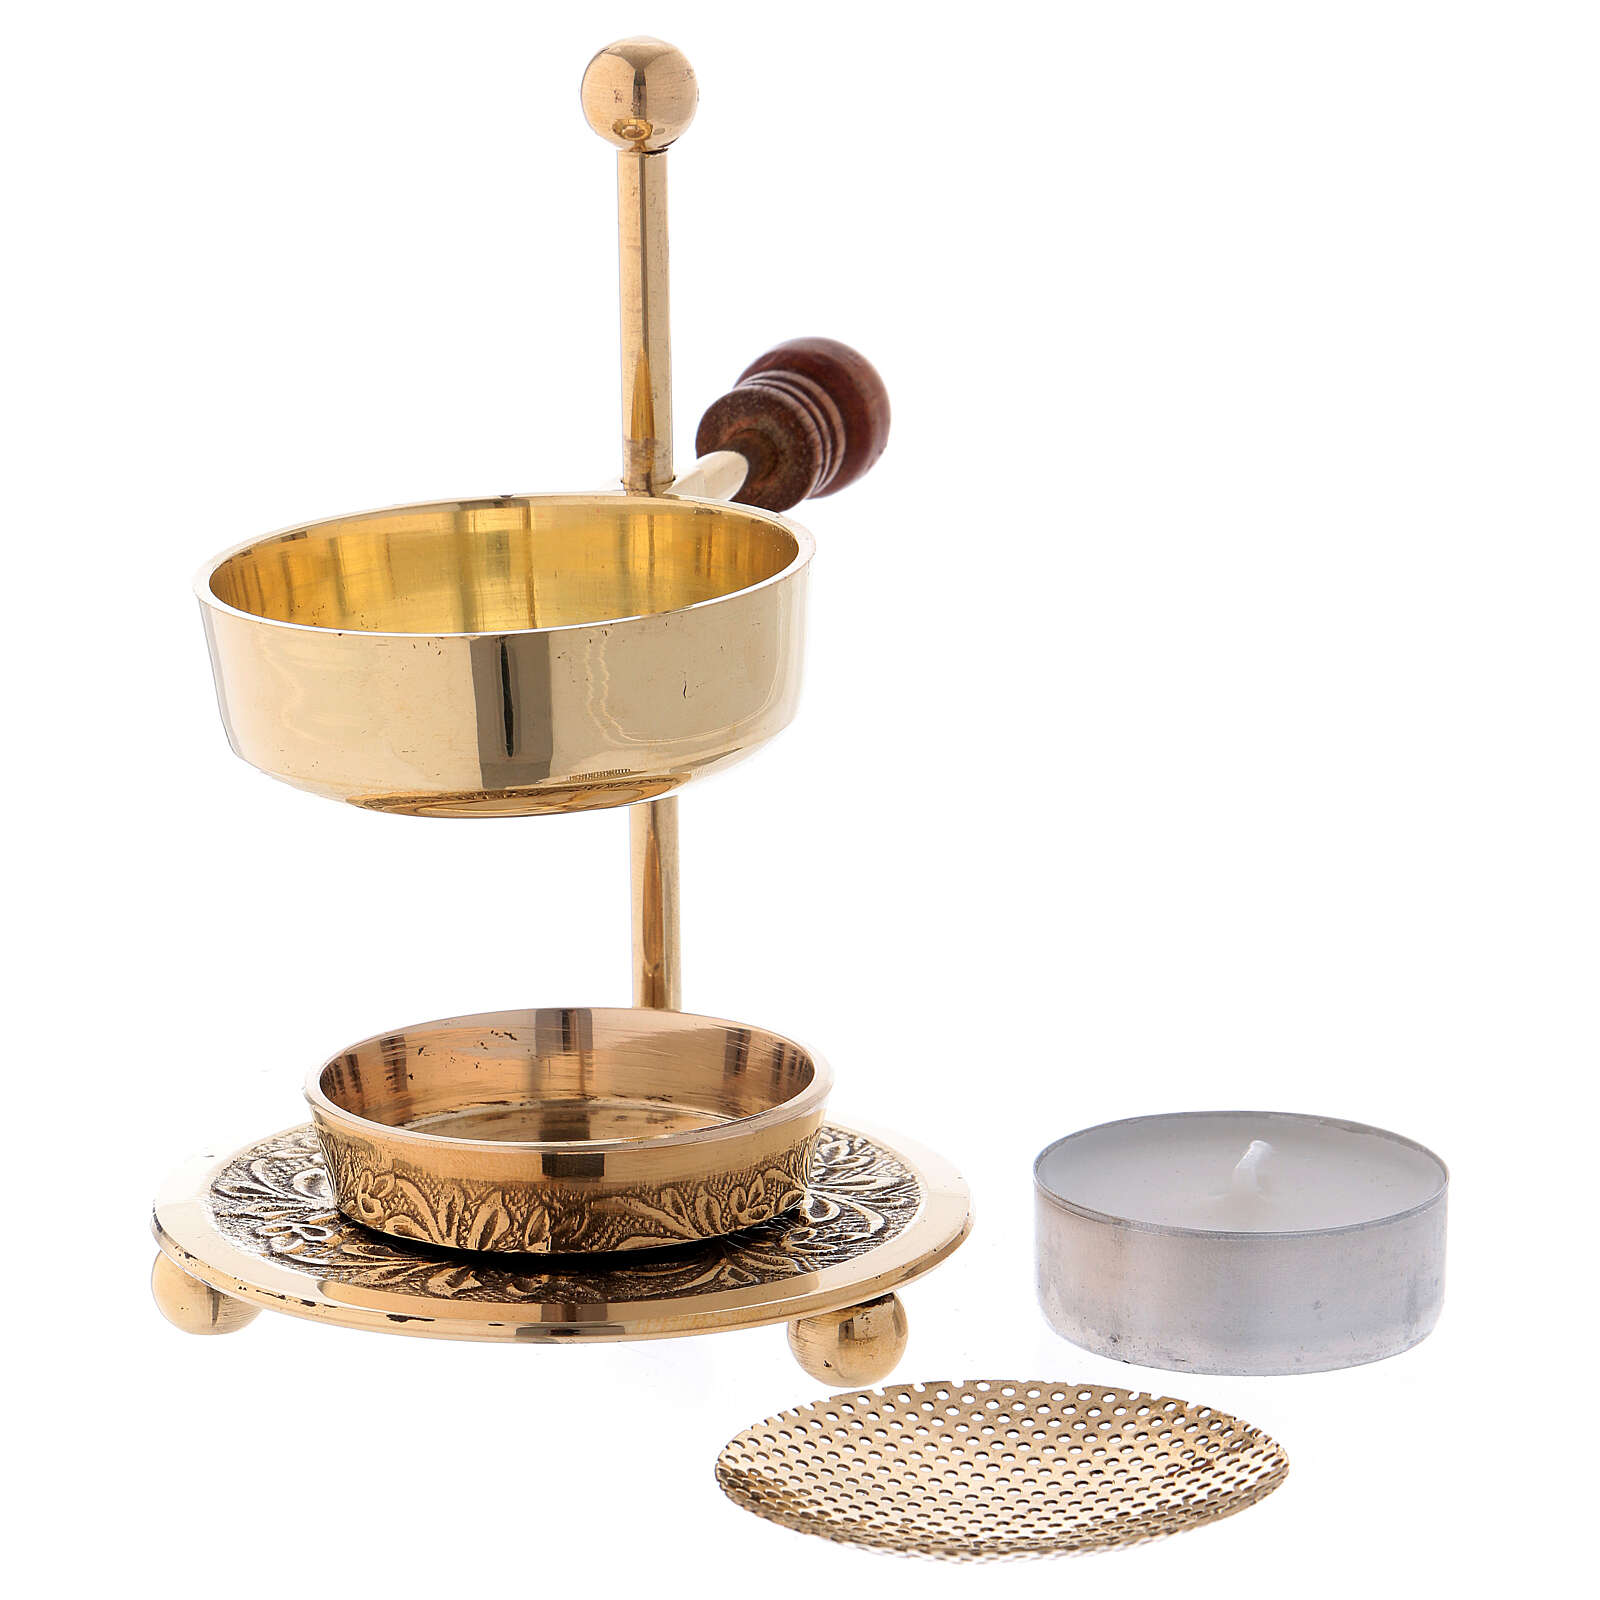 Gold plated brass incense burner with wood handle 4 1/4 in 3